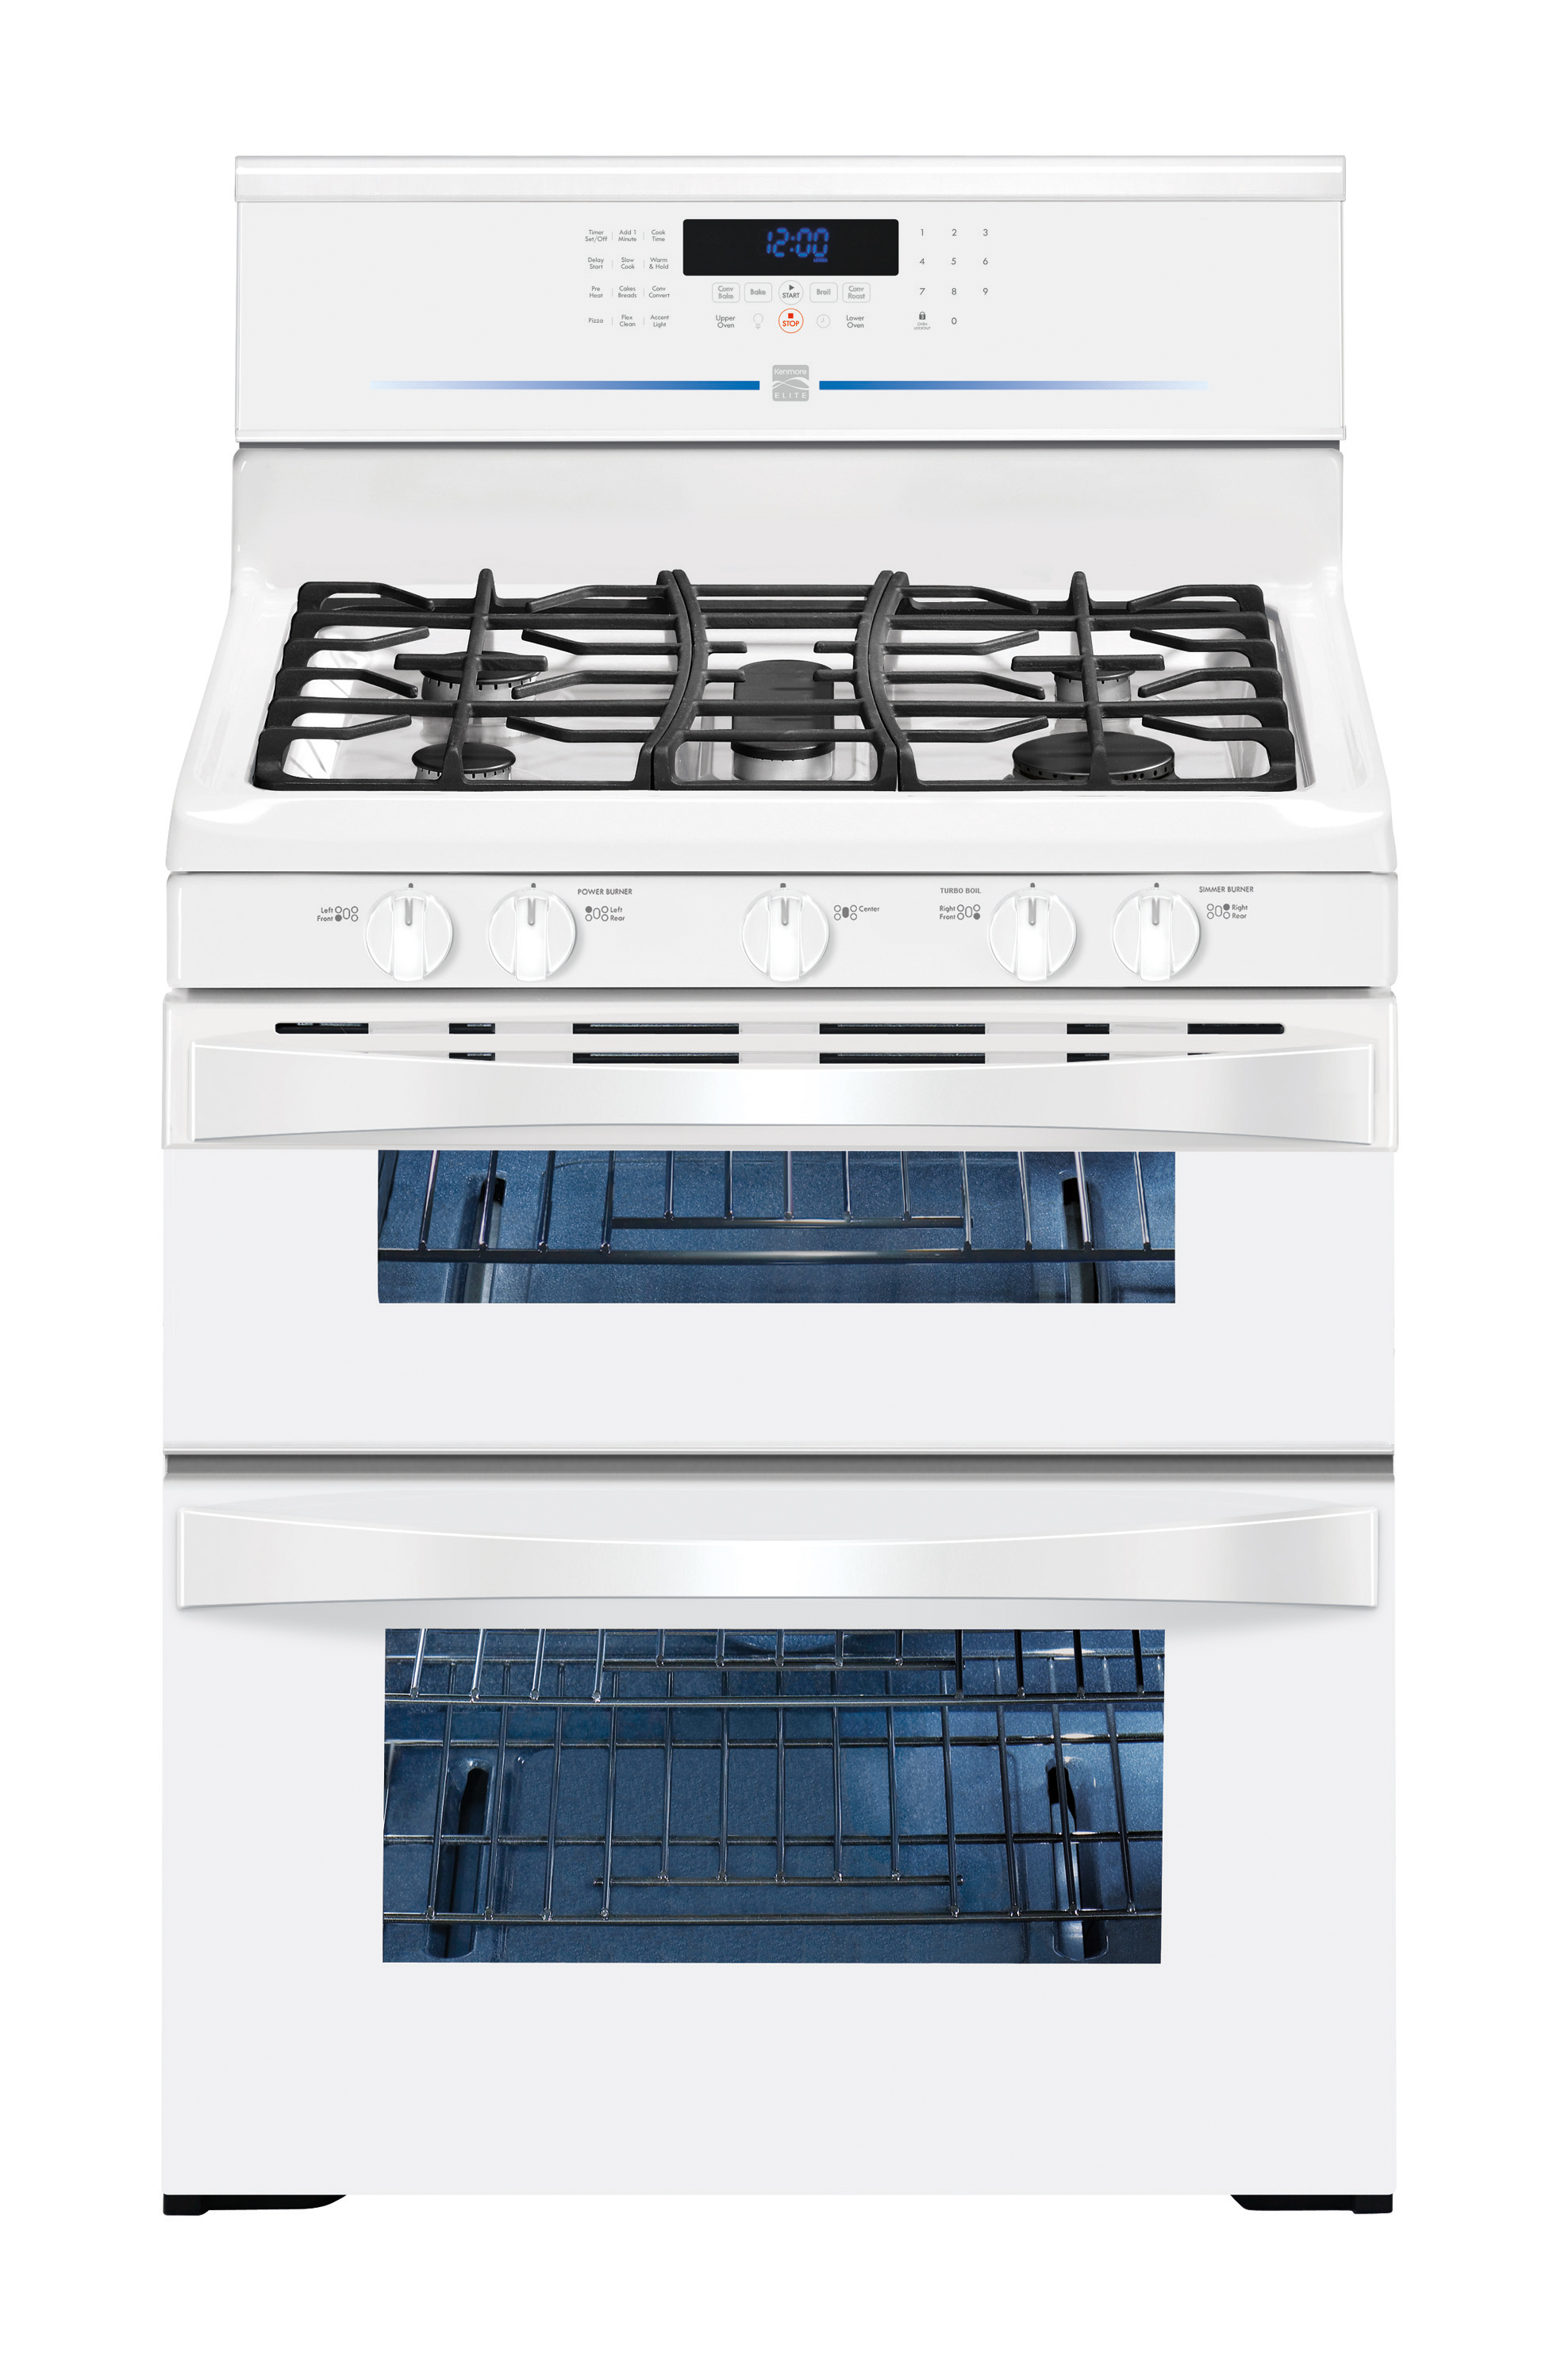 Kenmore Elite 5.8 cu. ft. Double-Oven Gas Range